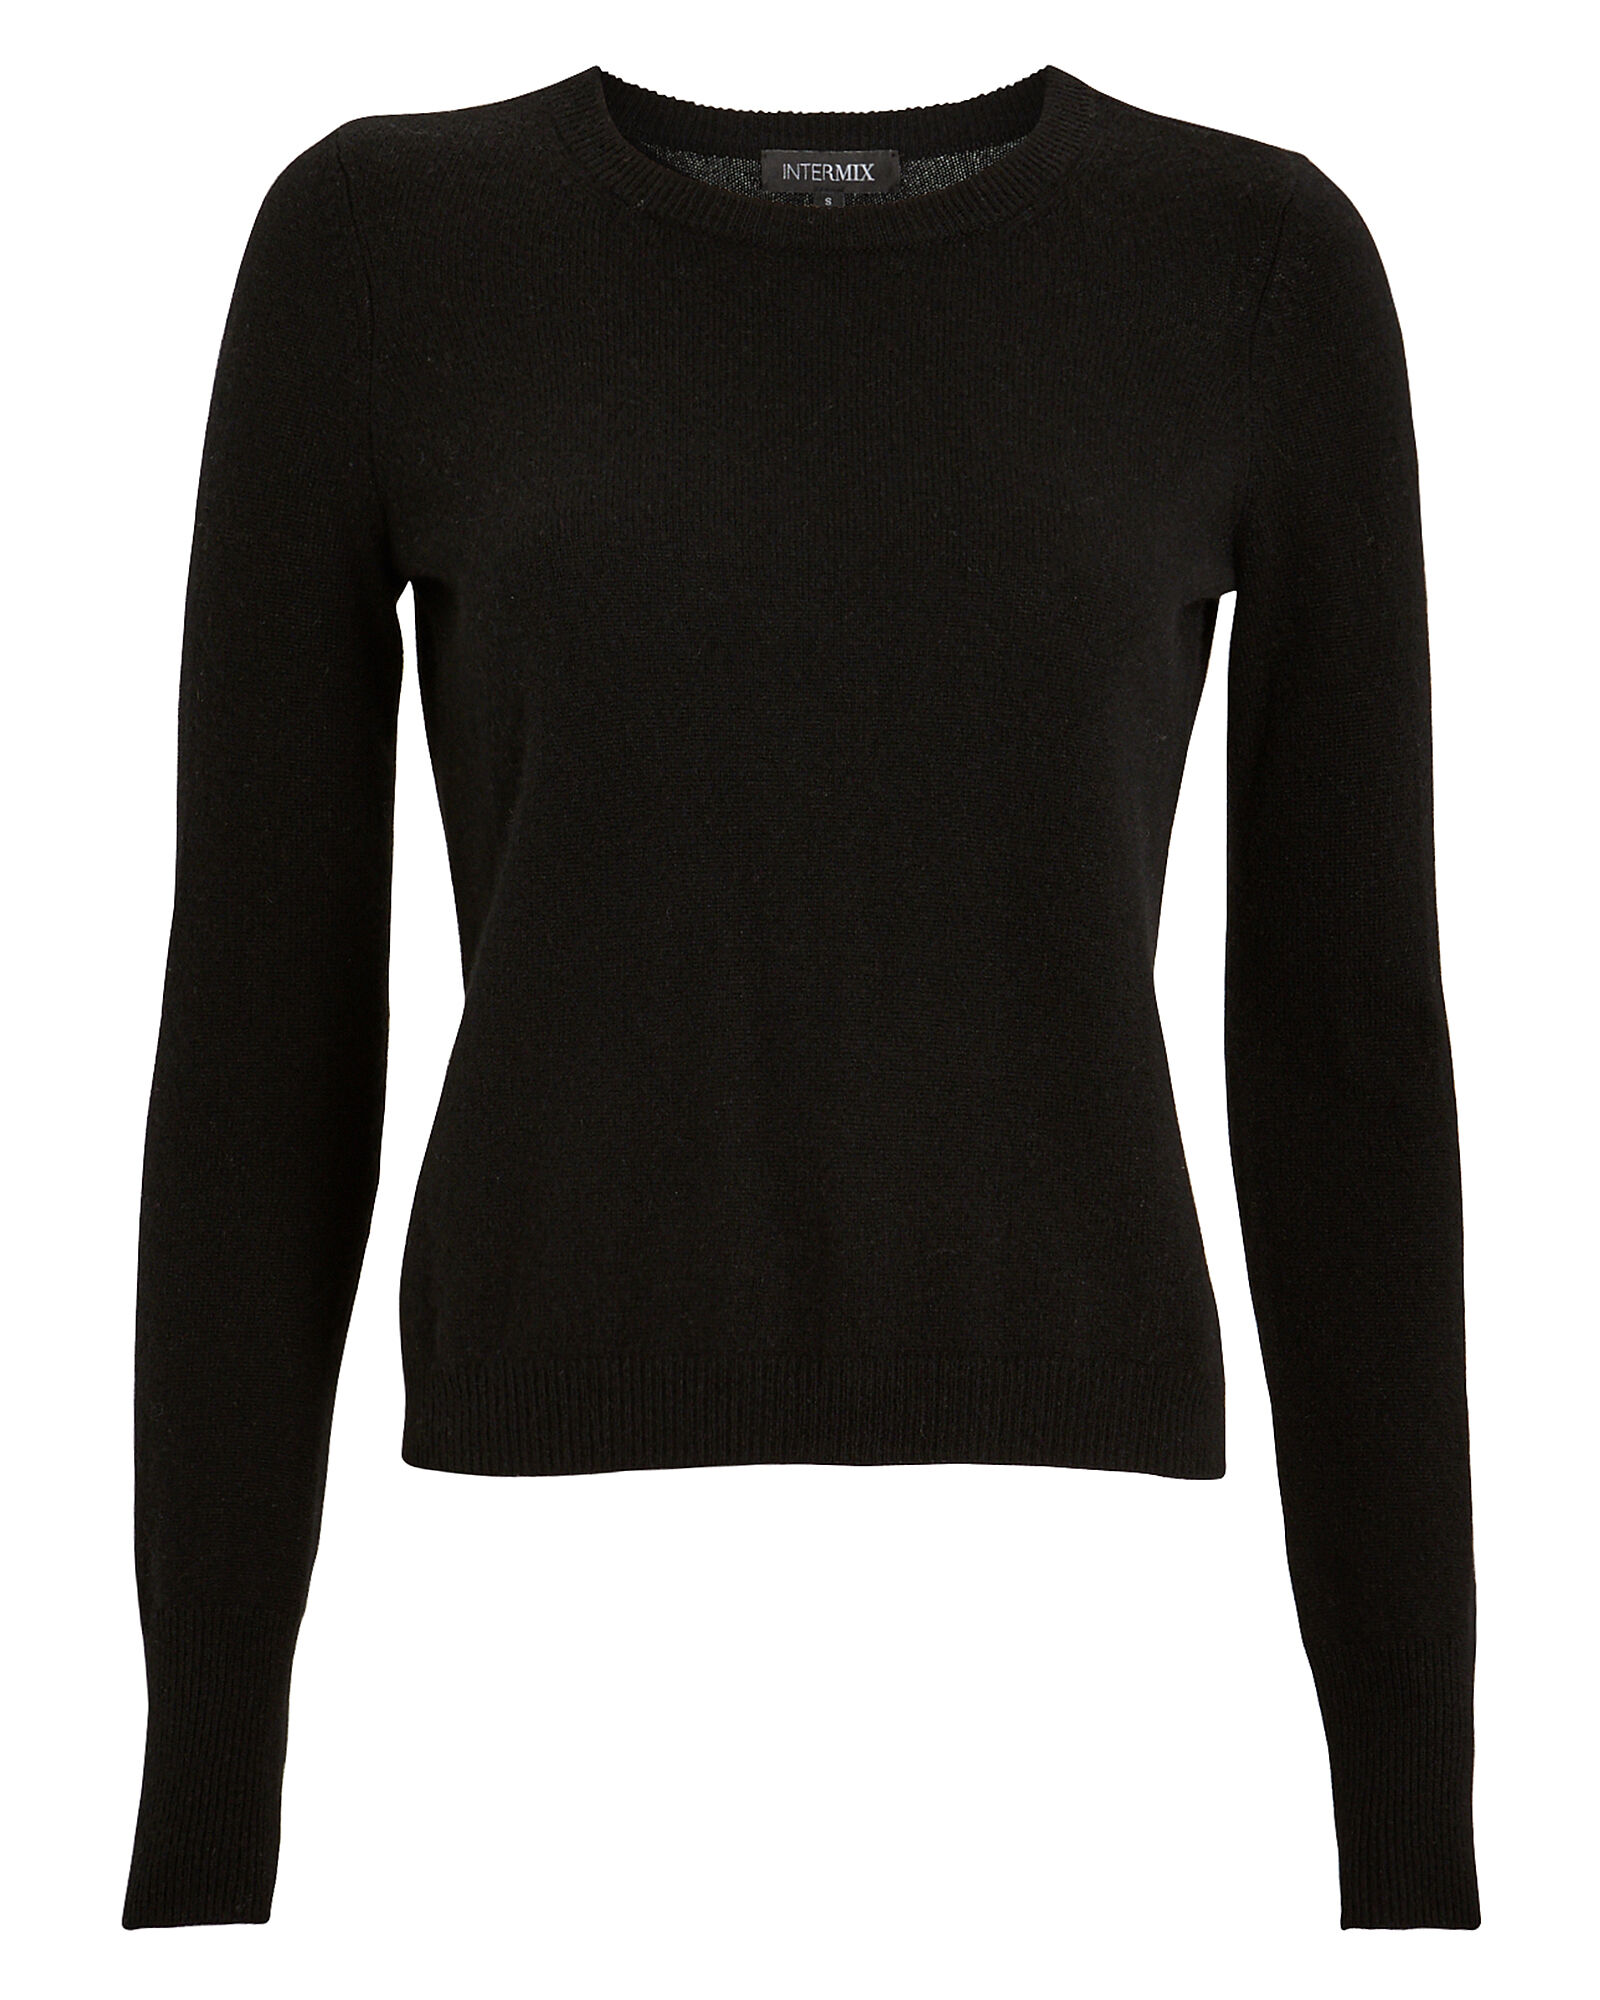 Valencia Cashmere Crewneck Sweater, BLACK, hi-res